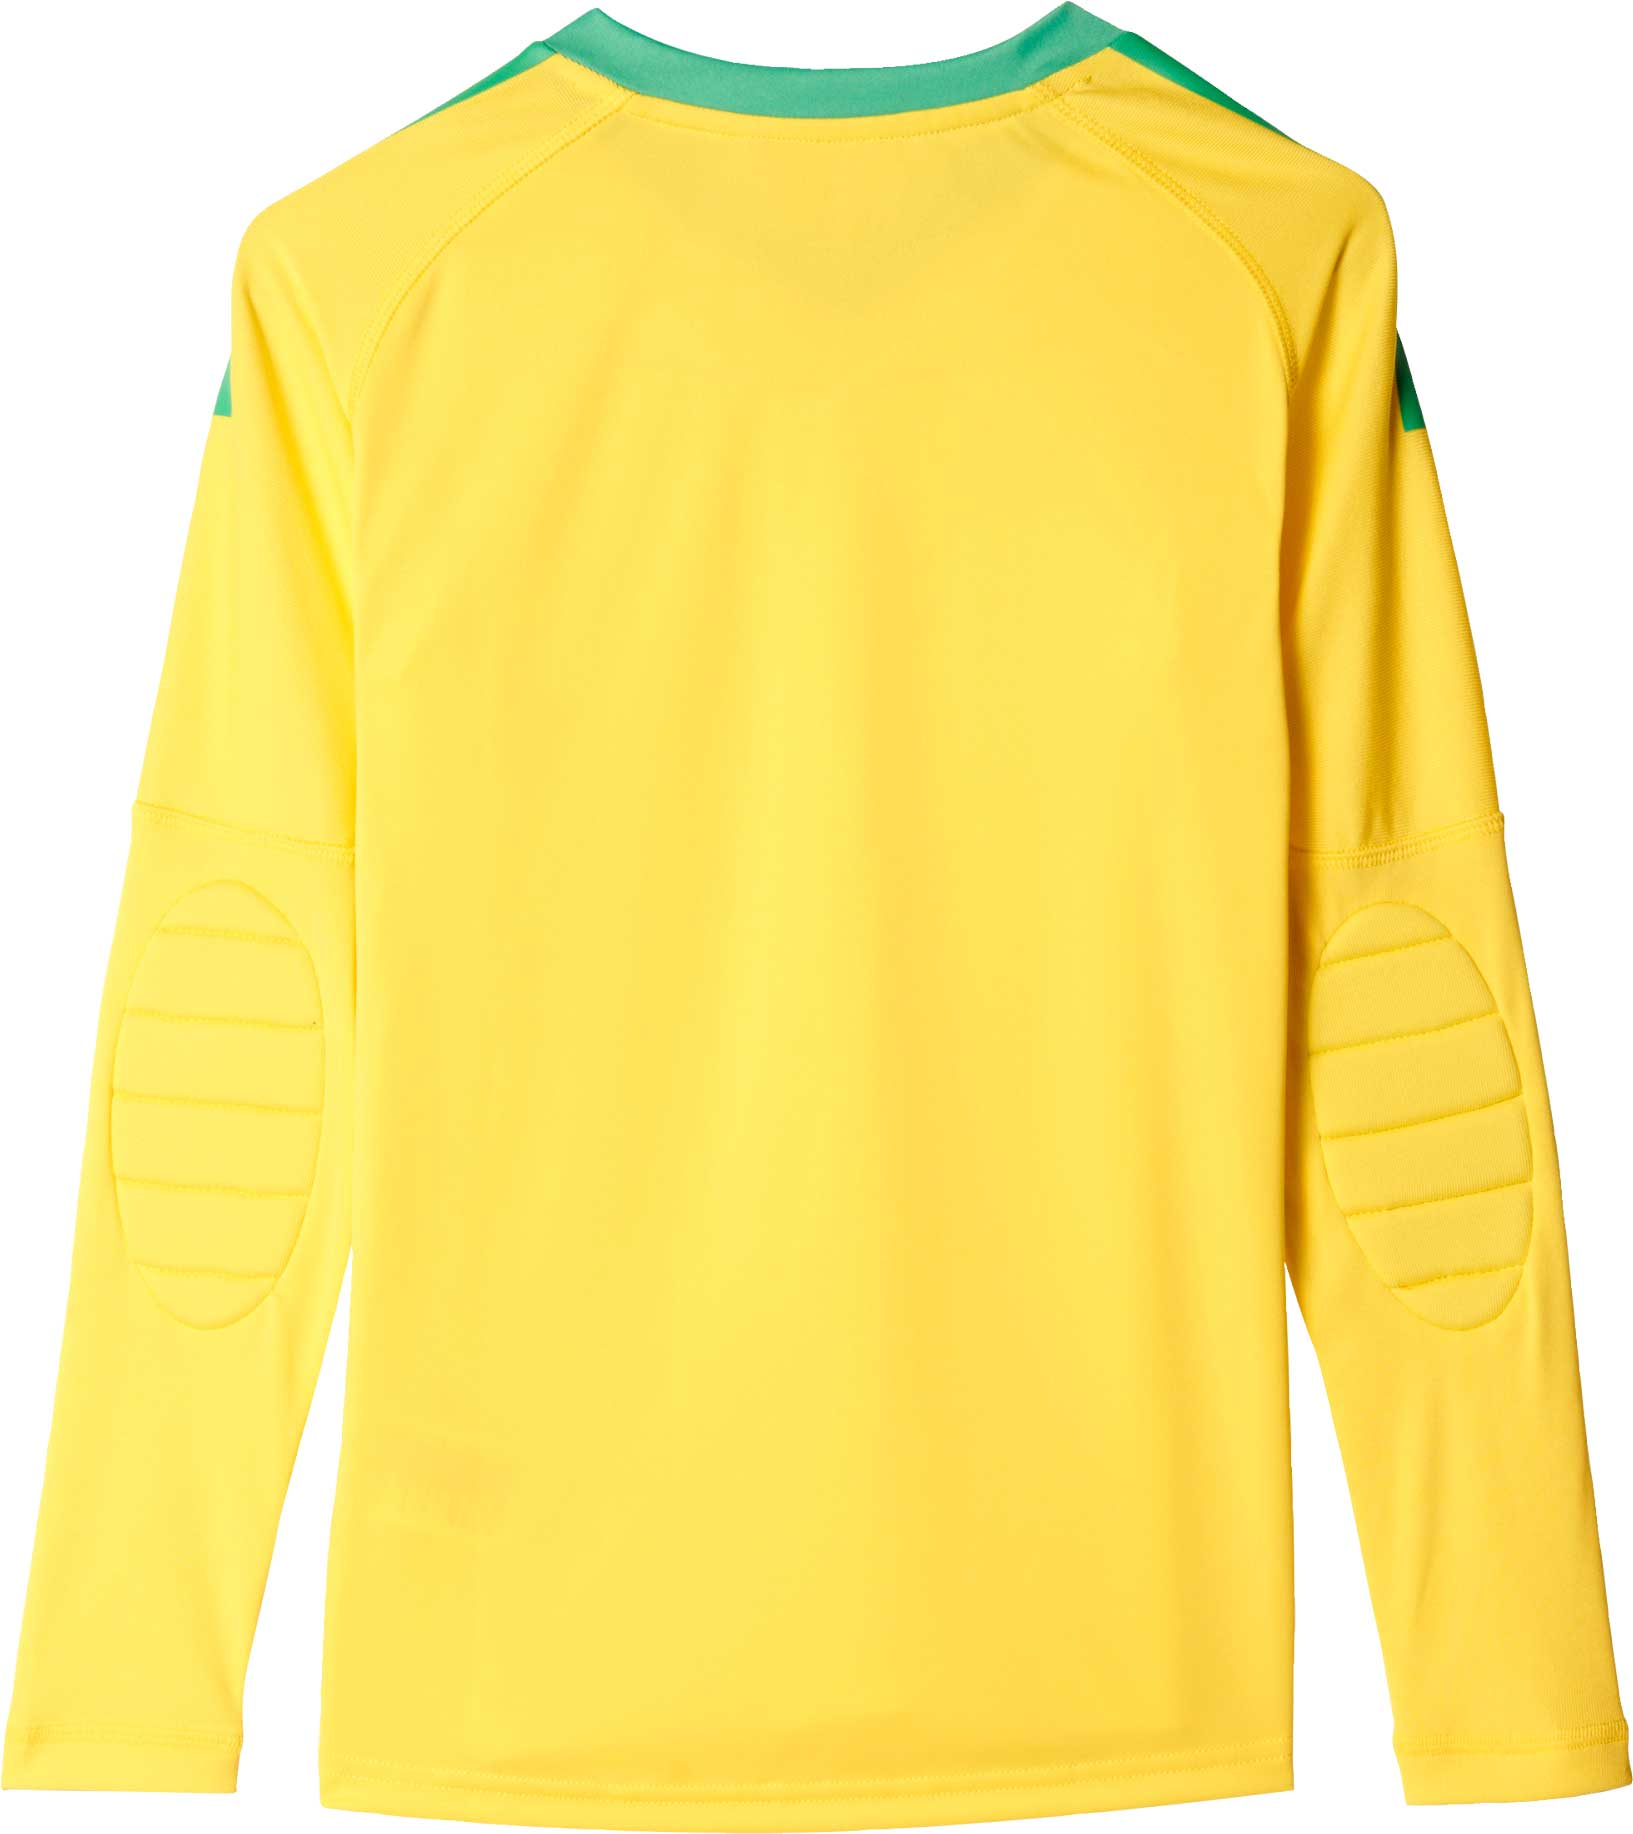 cc0791394 adidas Kids Revigo 17 Goalkeeper Jersey - Bright Yellow   Energy ...